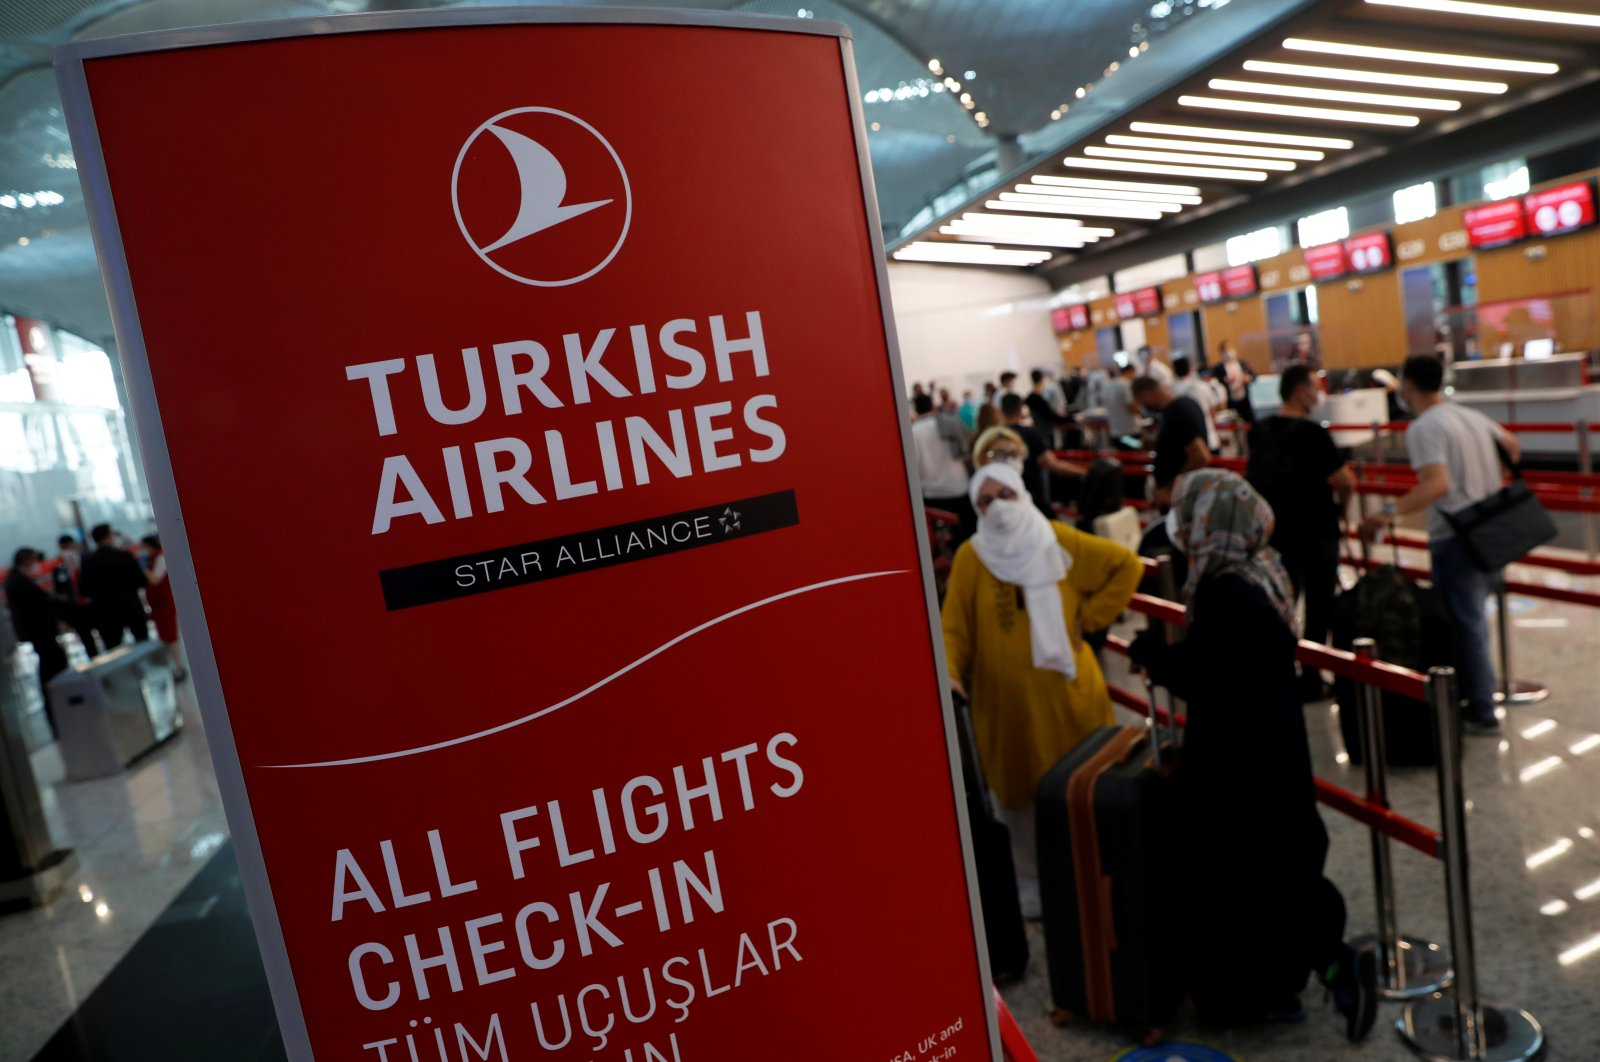 Passengers wearing protective face masks line up to check in for a flight to Washington, D.C., at the Istanbul Airport, during the first day of resumed Turkish Airlines flights to the U.S. amid the coronavirus pandemic, in Istanbul, Turkey June 19, 2020. (Reuters Photo)